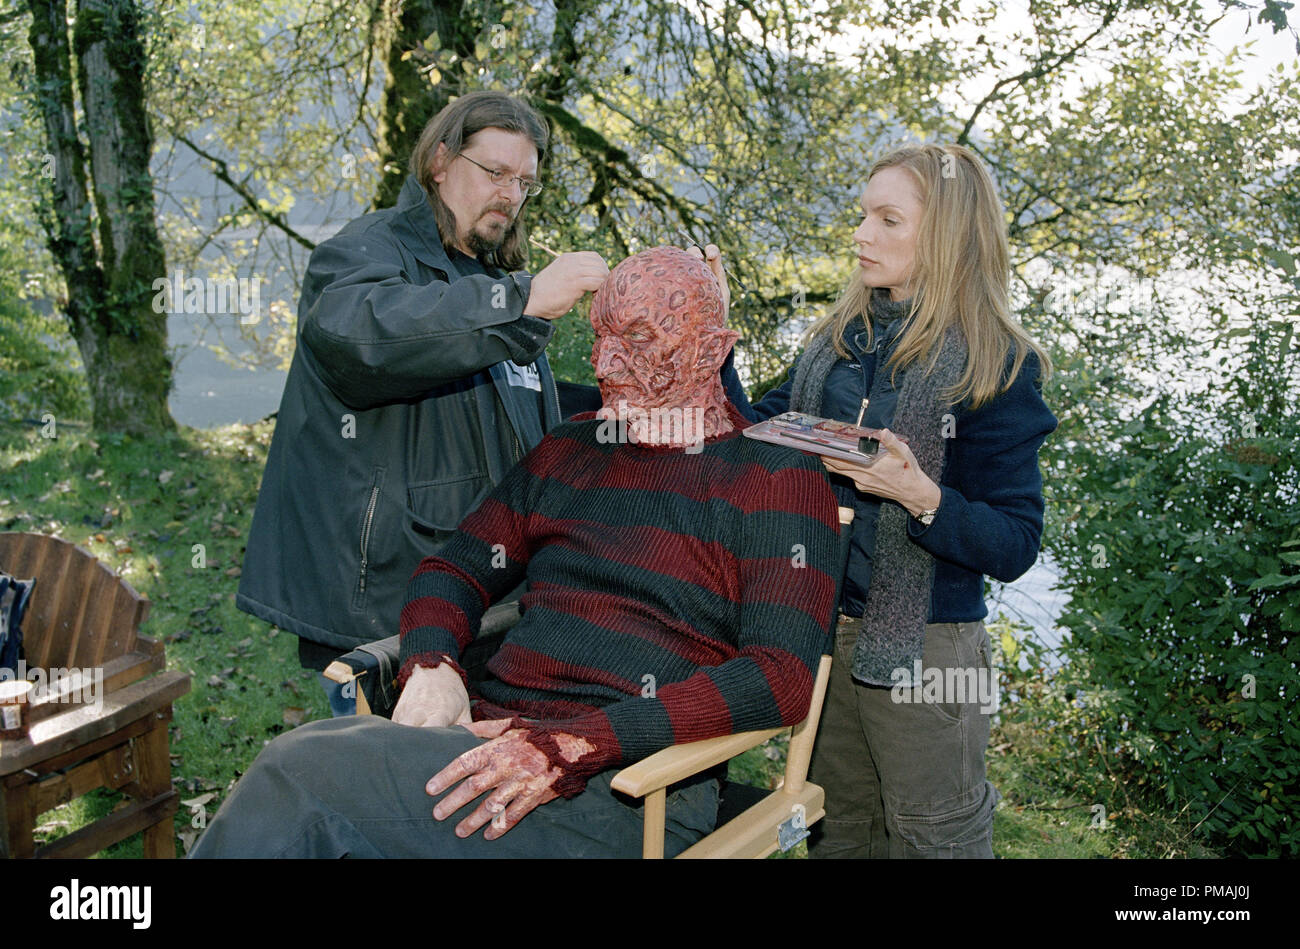 Robert Englund (seated) has his make-up touched up during on the set of New Line Cinema's ultimate showdown, FREDDY VS. JASON. 2003 - Stock Image